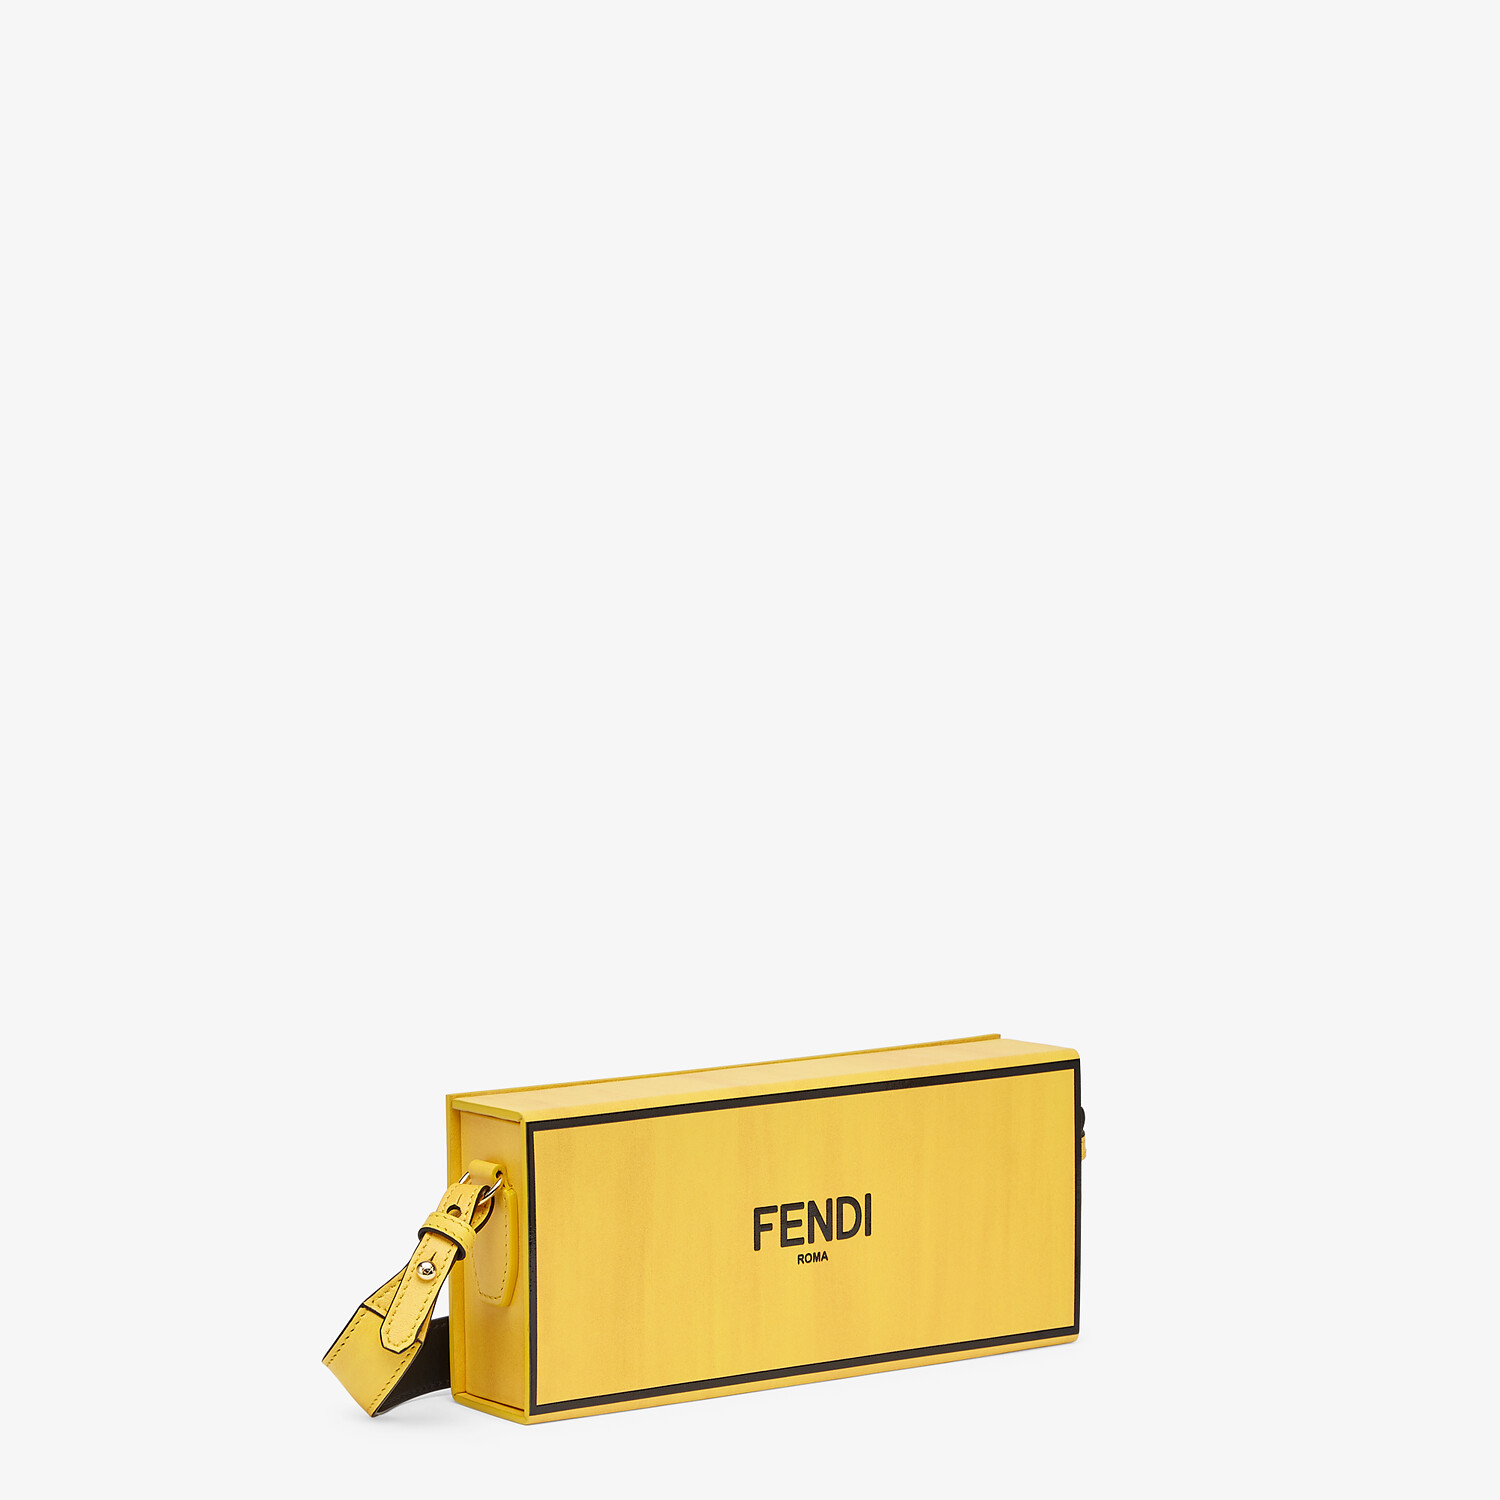 FENDI HORIZONTAL BOX - Yellow leather bag - view 2 detail